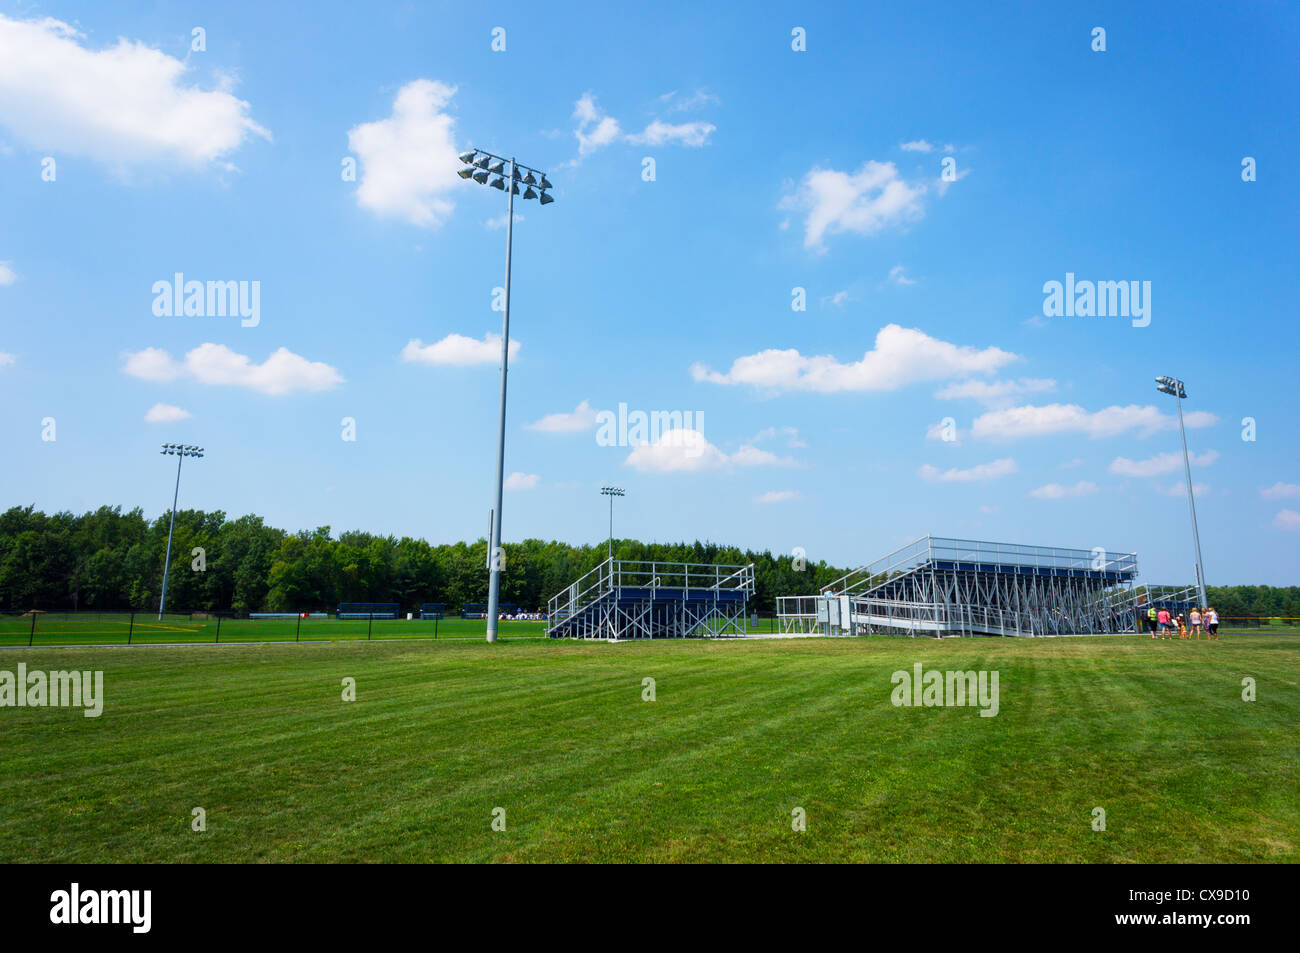 Wide angle shot of a college football (soccer) field with stands (bleachers) and floodlights. - Stock Image